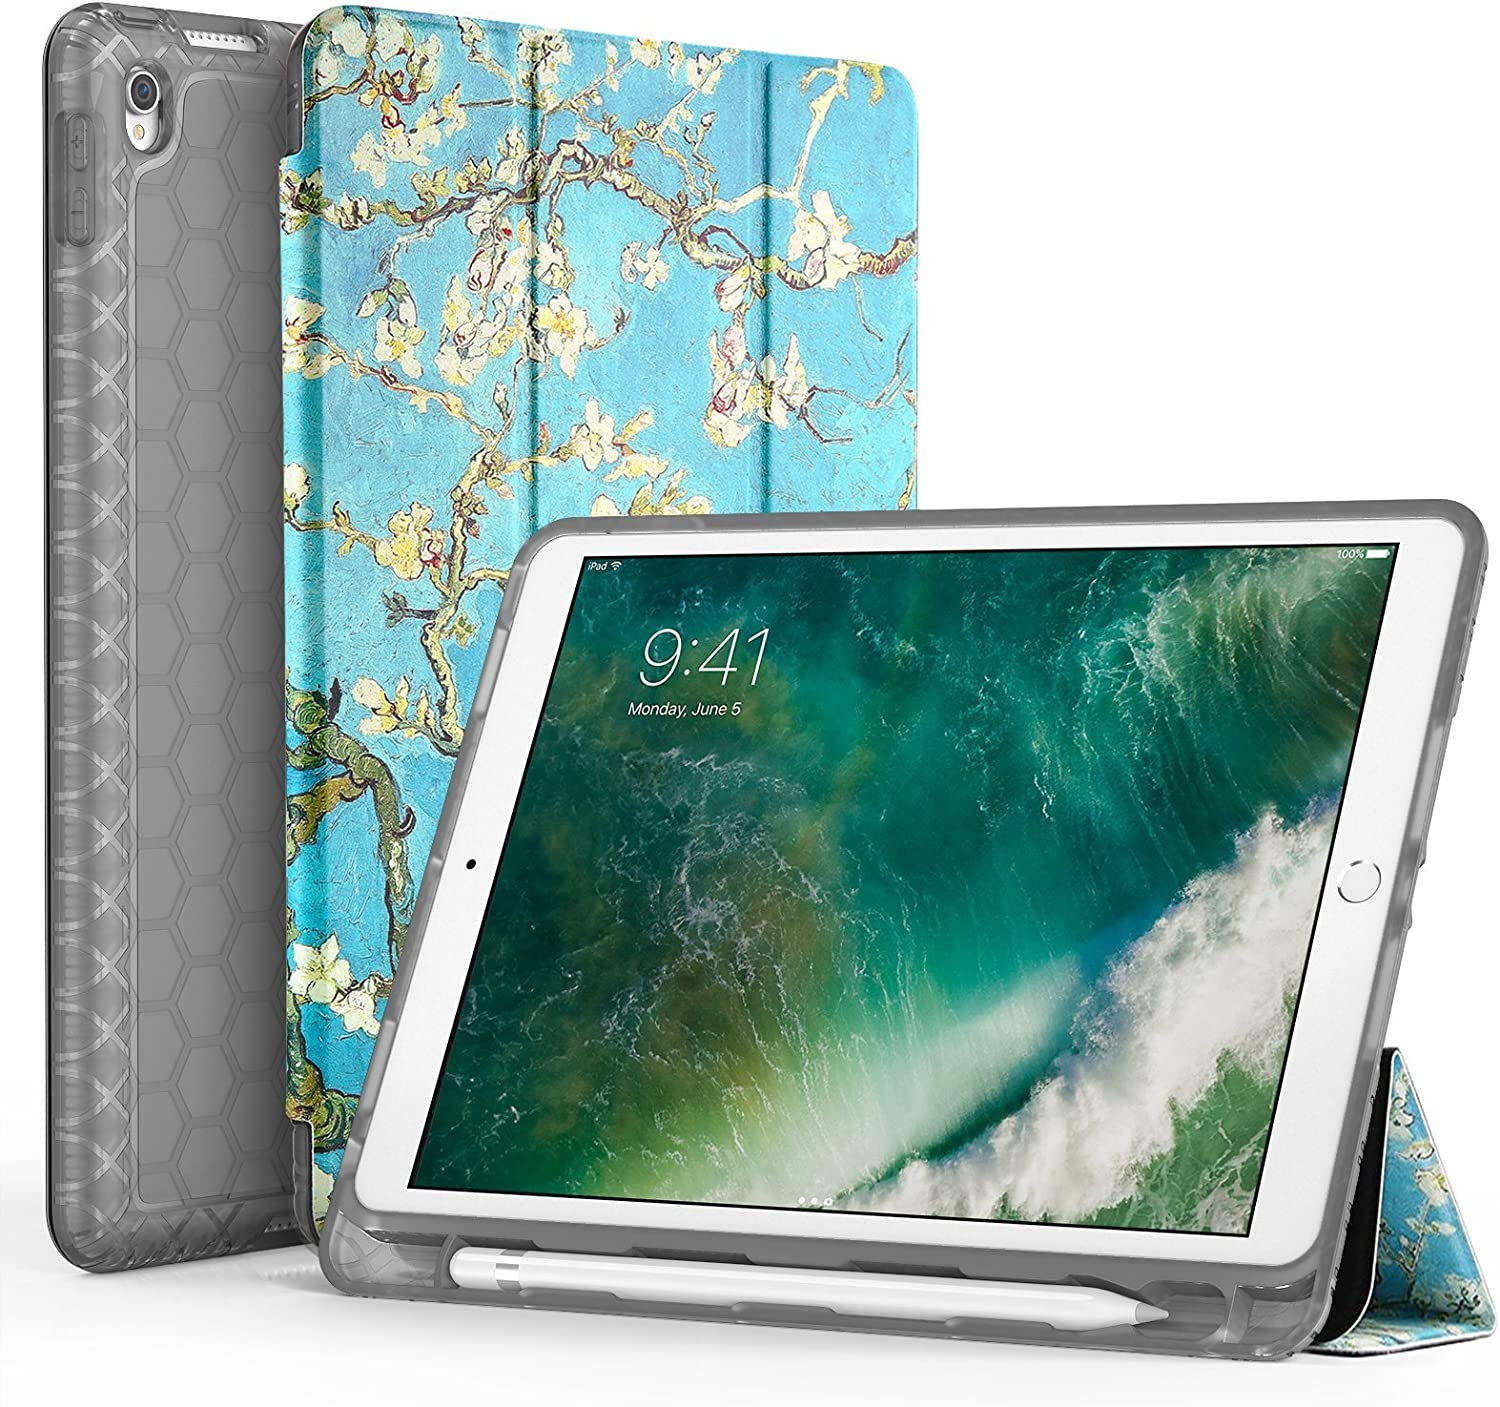 """SWEES Compatible with iPad Air (3rd Gen) 10.5"""" 2019 / iPad Pro 10.5 2017 Case, Slim Full Body Protective Smart Cover Leather Case Shockproof with Stand Built-in Pencil Holder (S - Blossom)"""